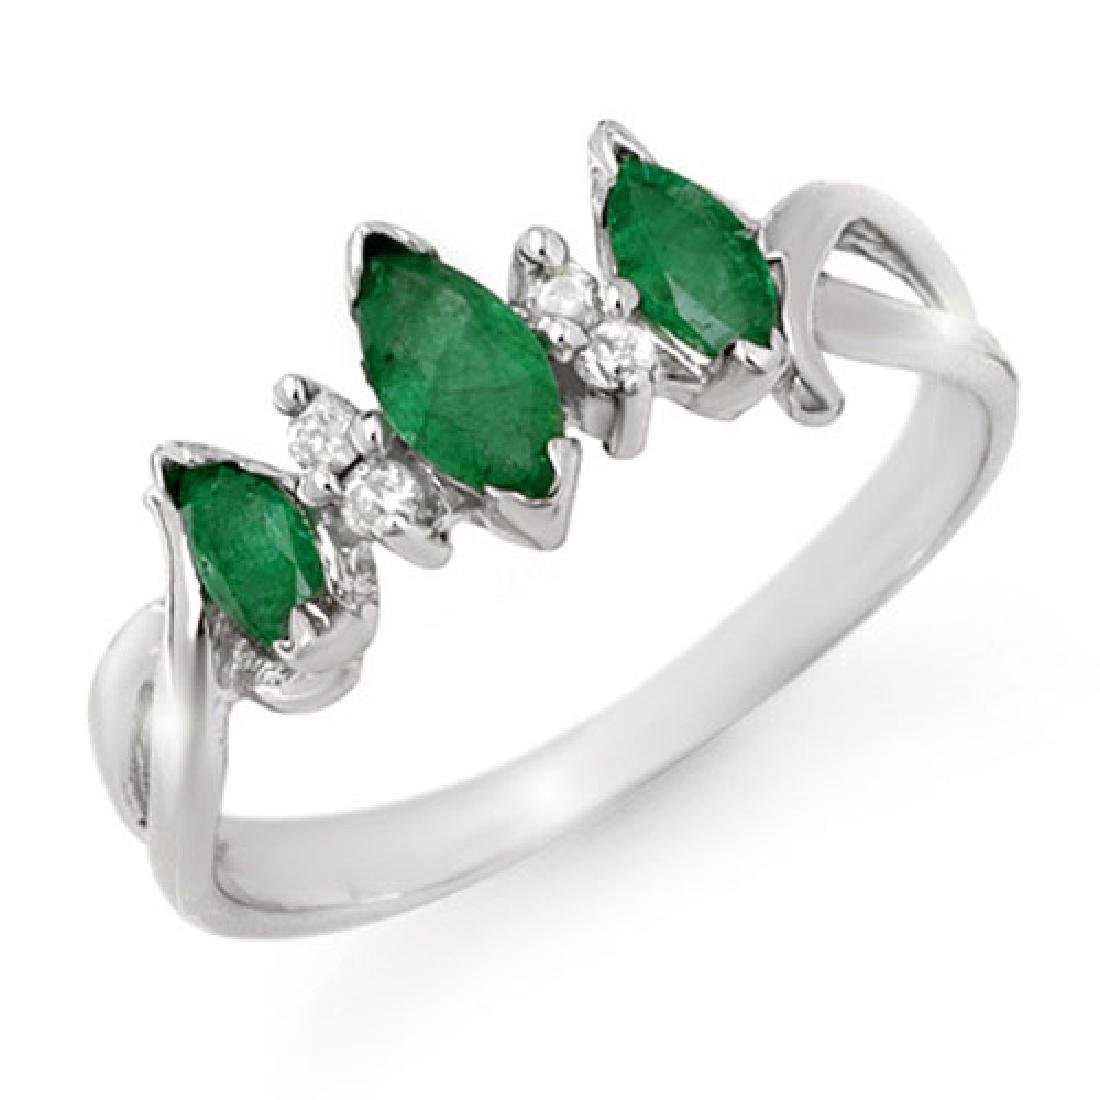 0.57 CTW Emerald & Diamond Ring 10K White Gold